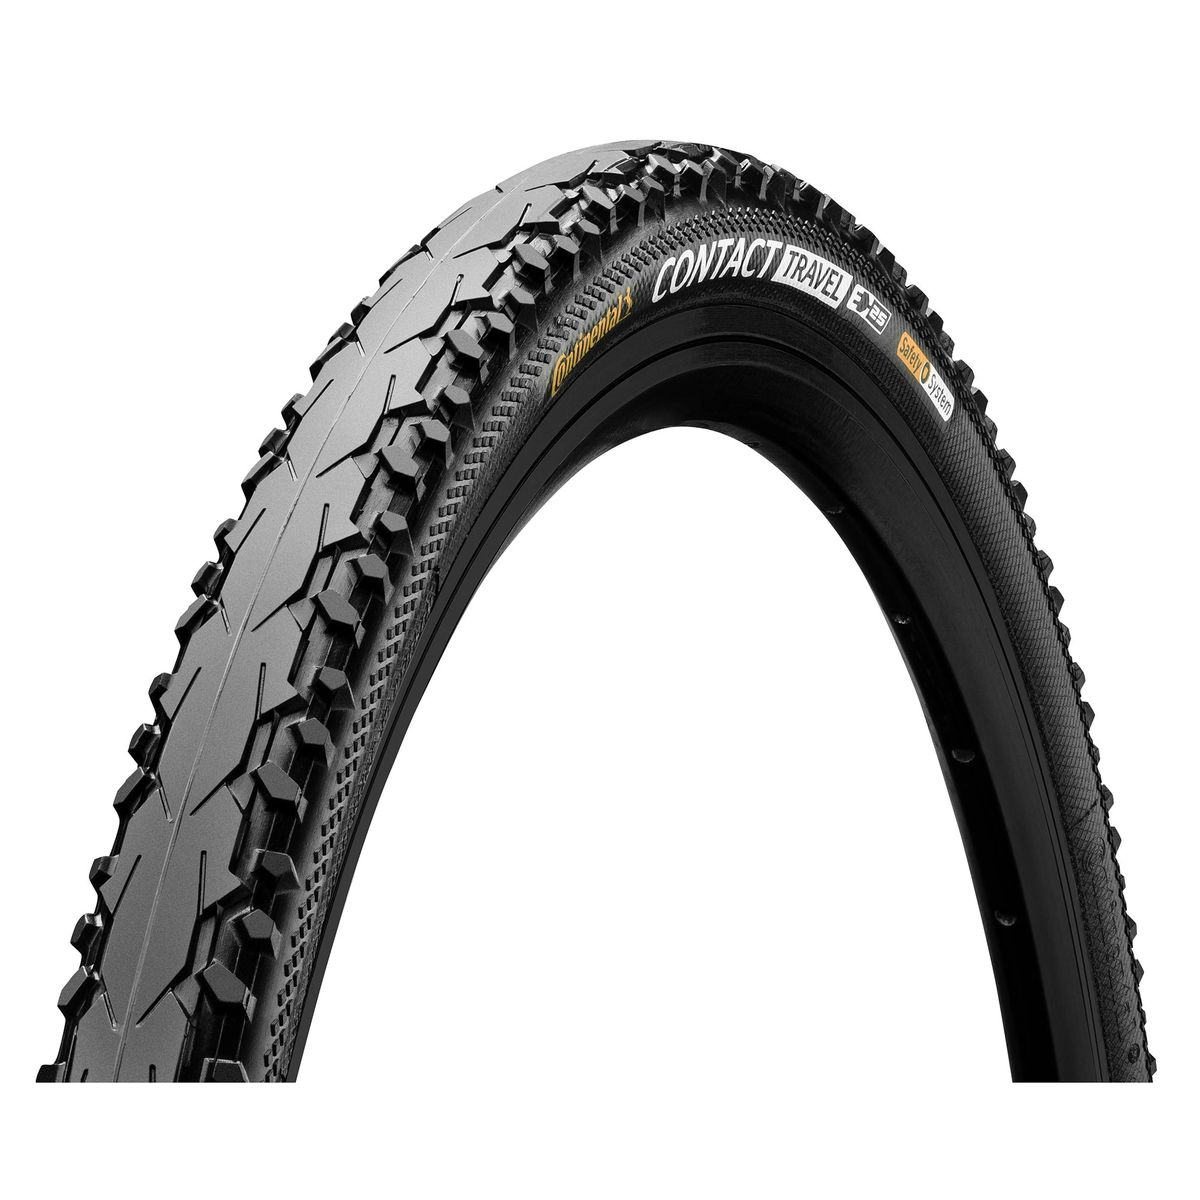 Contact Travel Reflex tyre